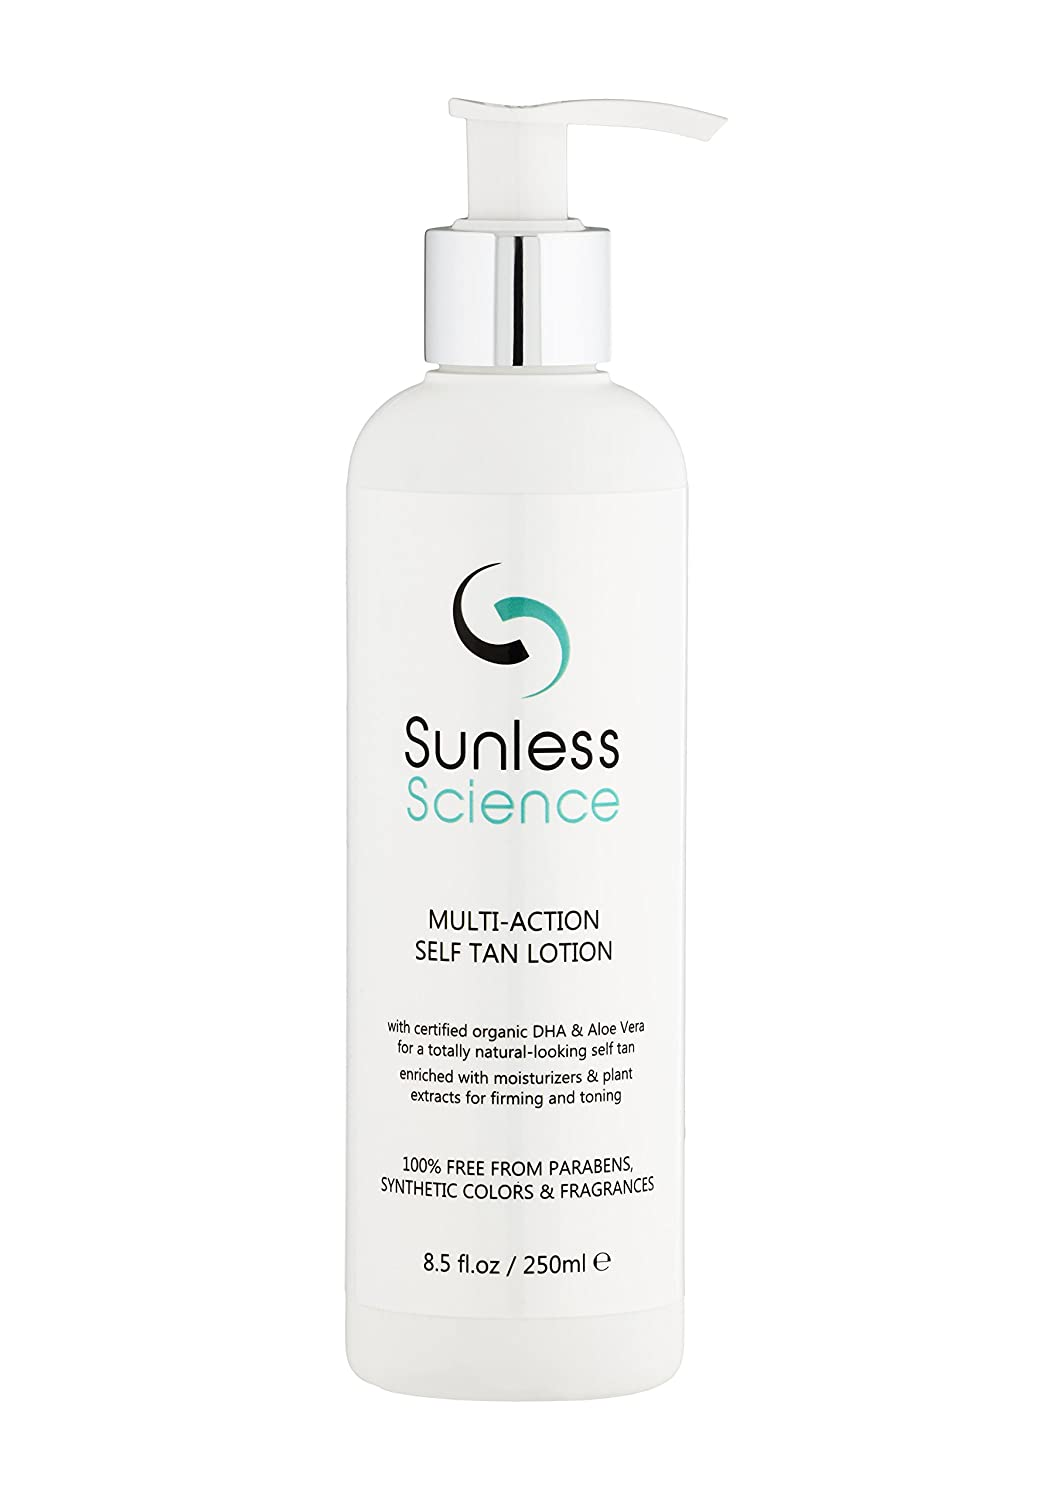 b6c80e98ab0 Sunless Science Multi-action Self Tan Lotion - Best-selling USA Organic  Natural Sunless Tanner Fragrance-Free Paraben-Free Non-Toxic Untinted Self  Tanning ...